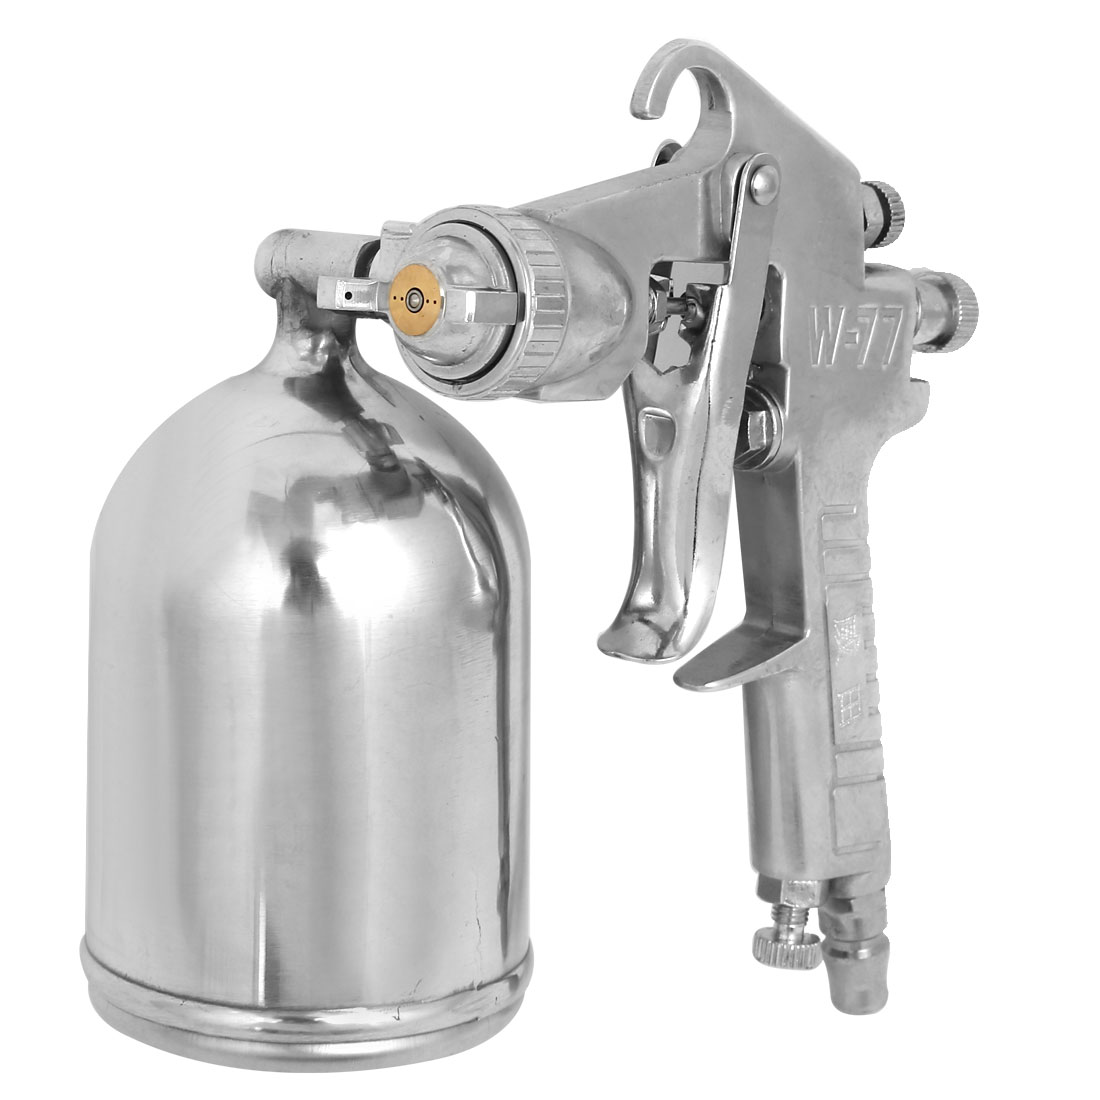 W-77 Spray Gun+400Cc Cup Sprayer Paint Tool Set Silver Tone